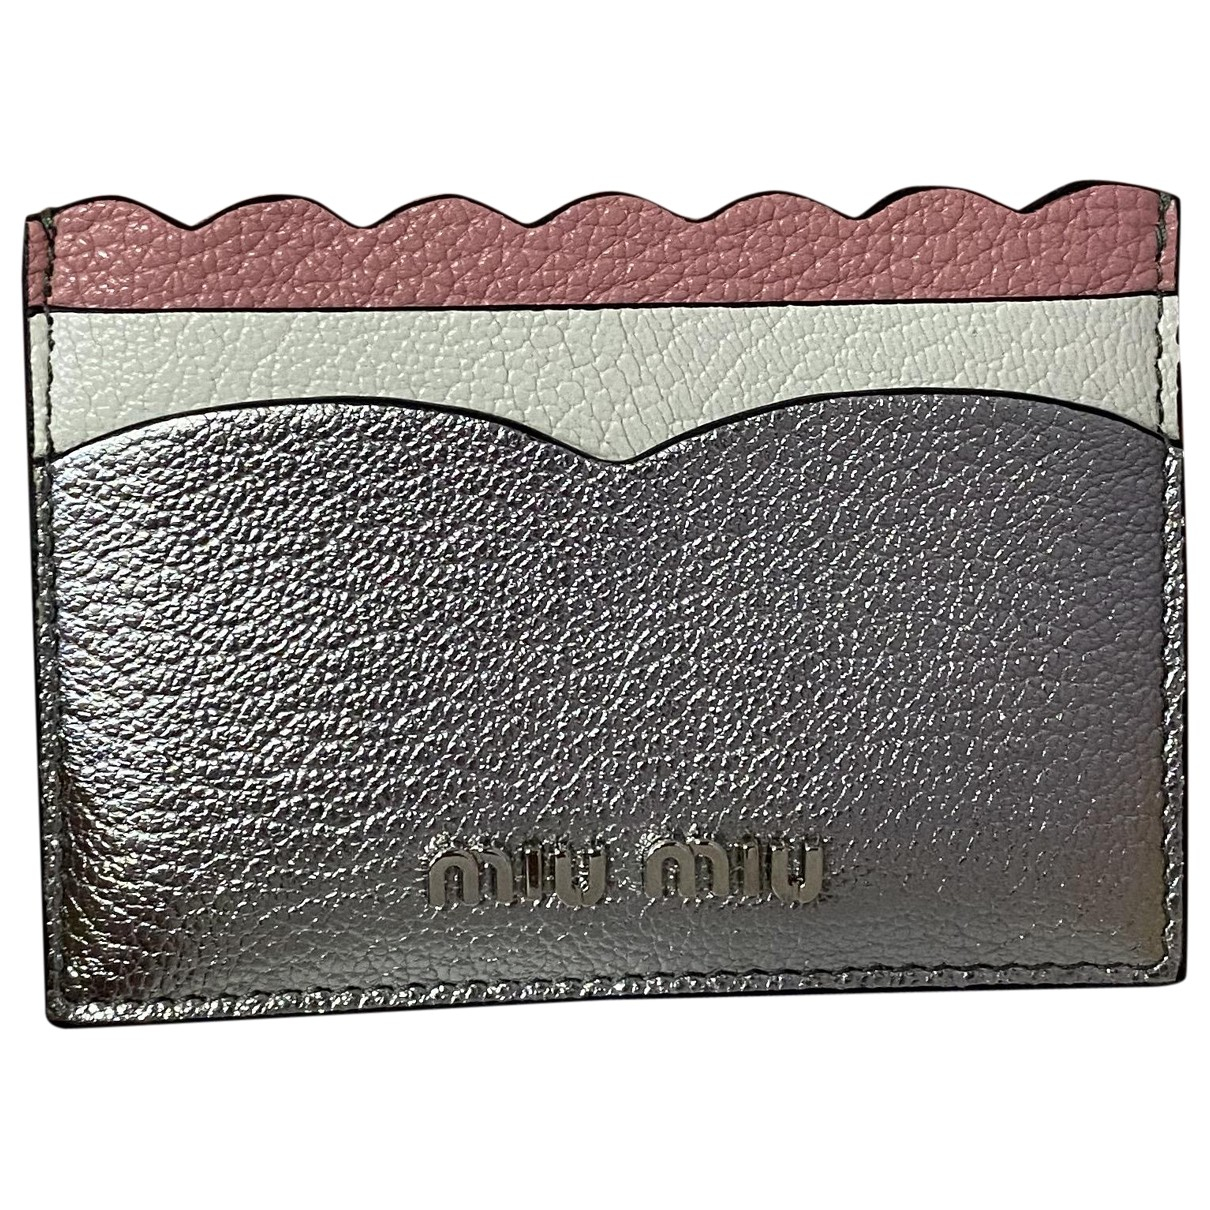 Miu Miu \N Silver Leather Purses, wallet & cases for Women \N